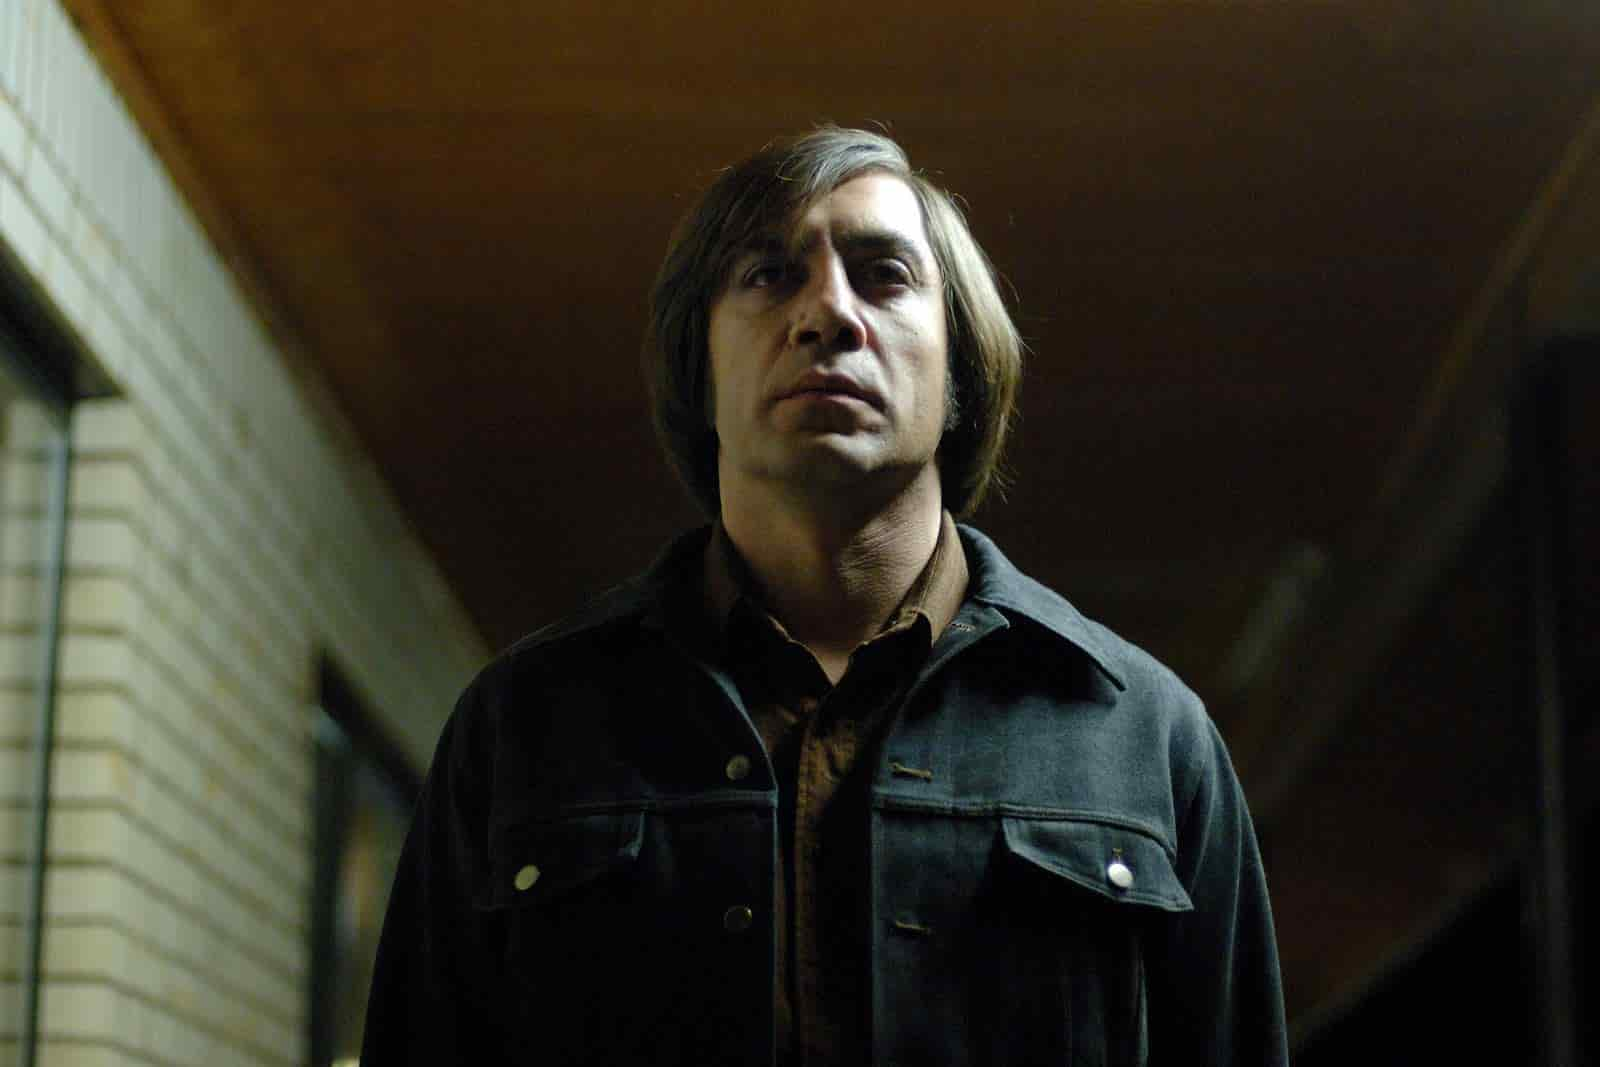 Low Angle Shot - Low Angle Example - No Country 1